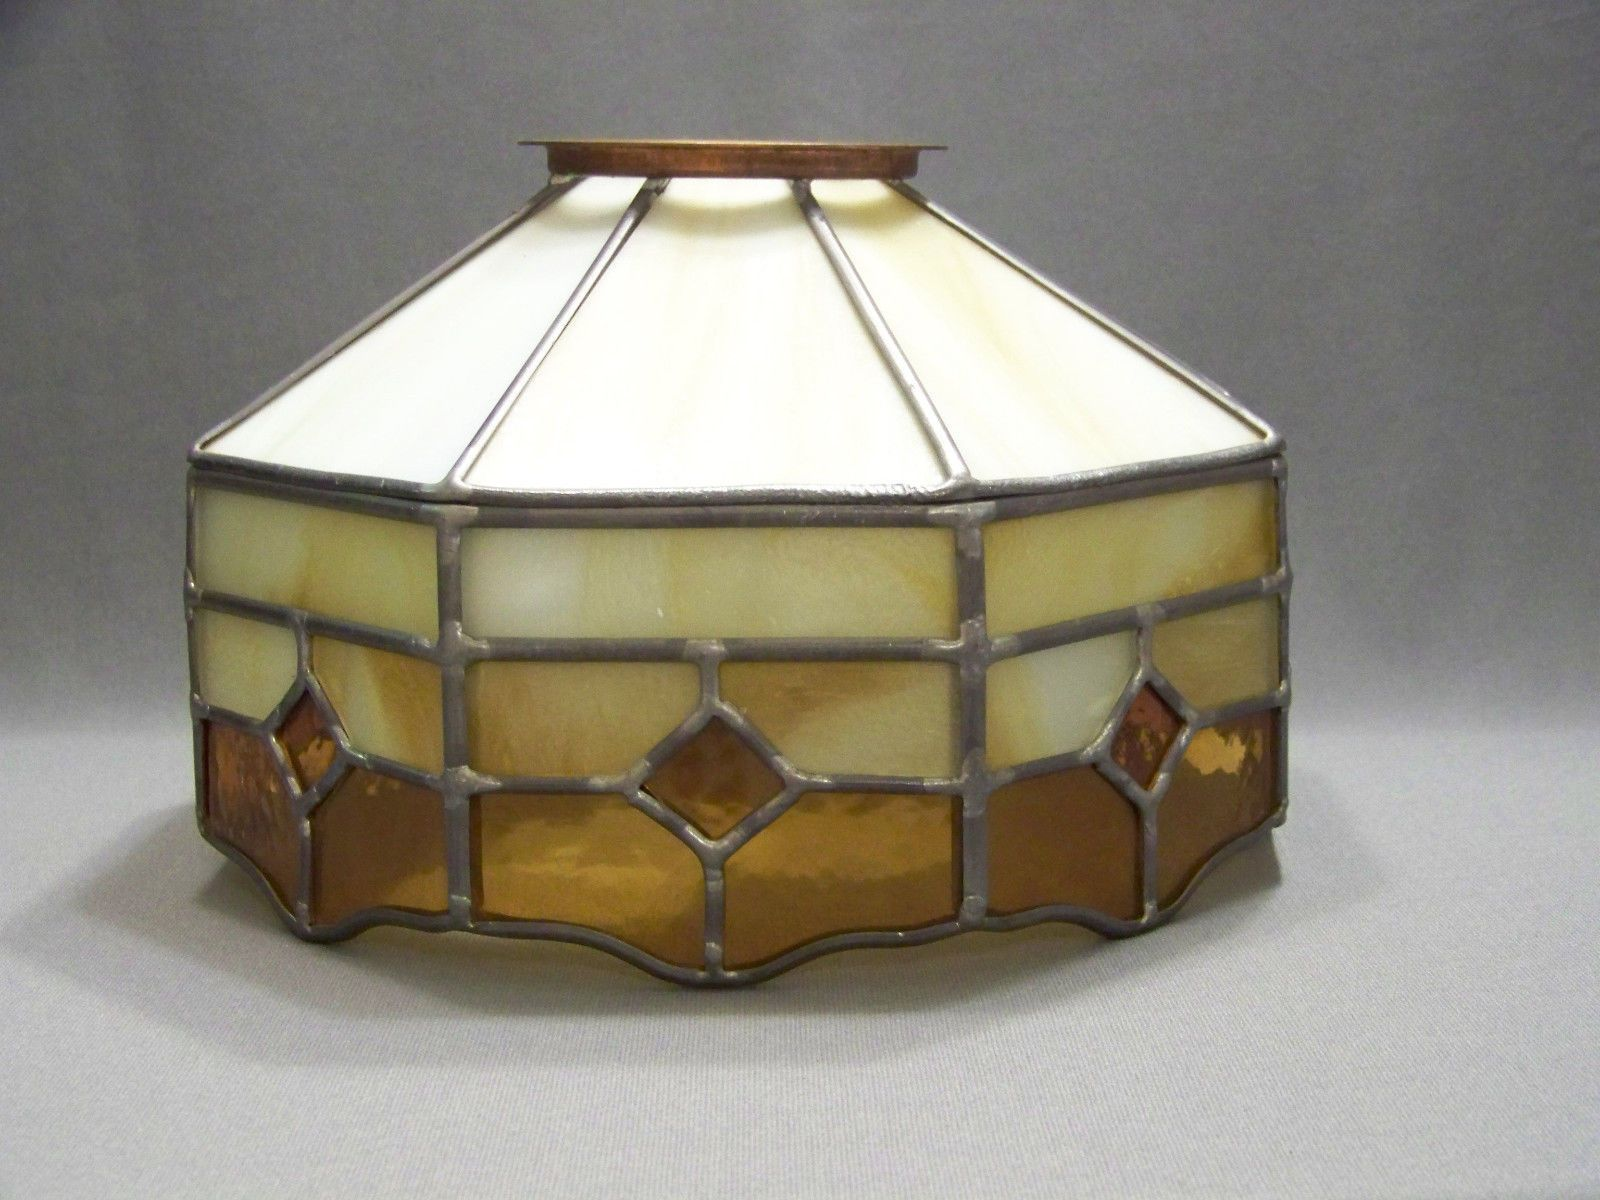 Tiffany style stain glass lamp shade for ceiling fan cream and tiffany style stain glass lamp shade for ceiling fan cream and amber panels mozeypictures Image collections